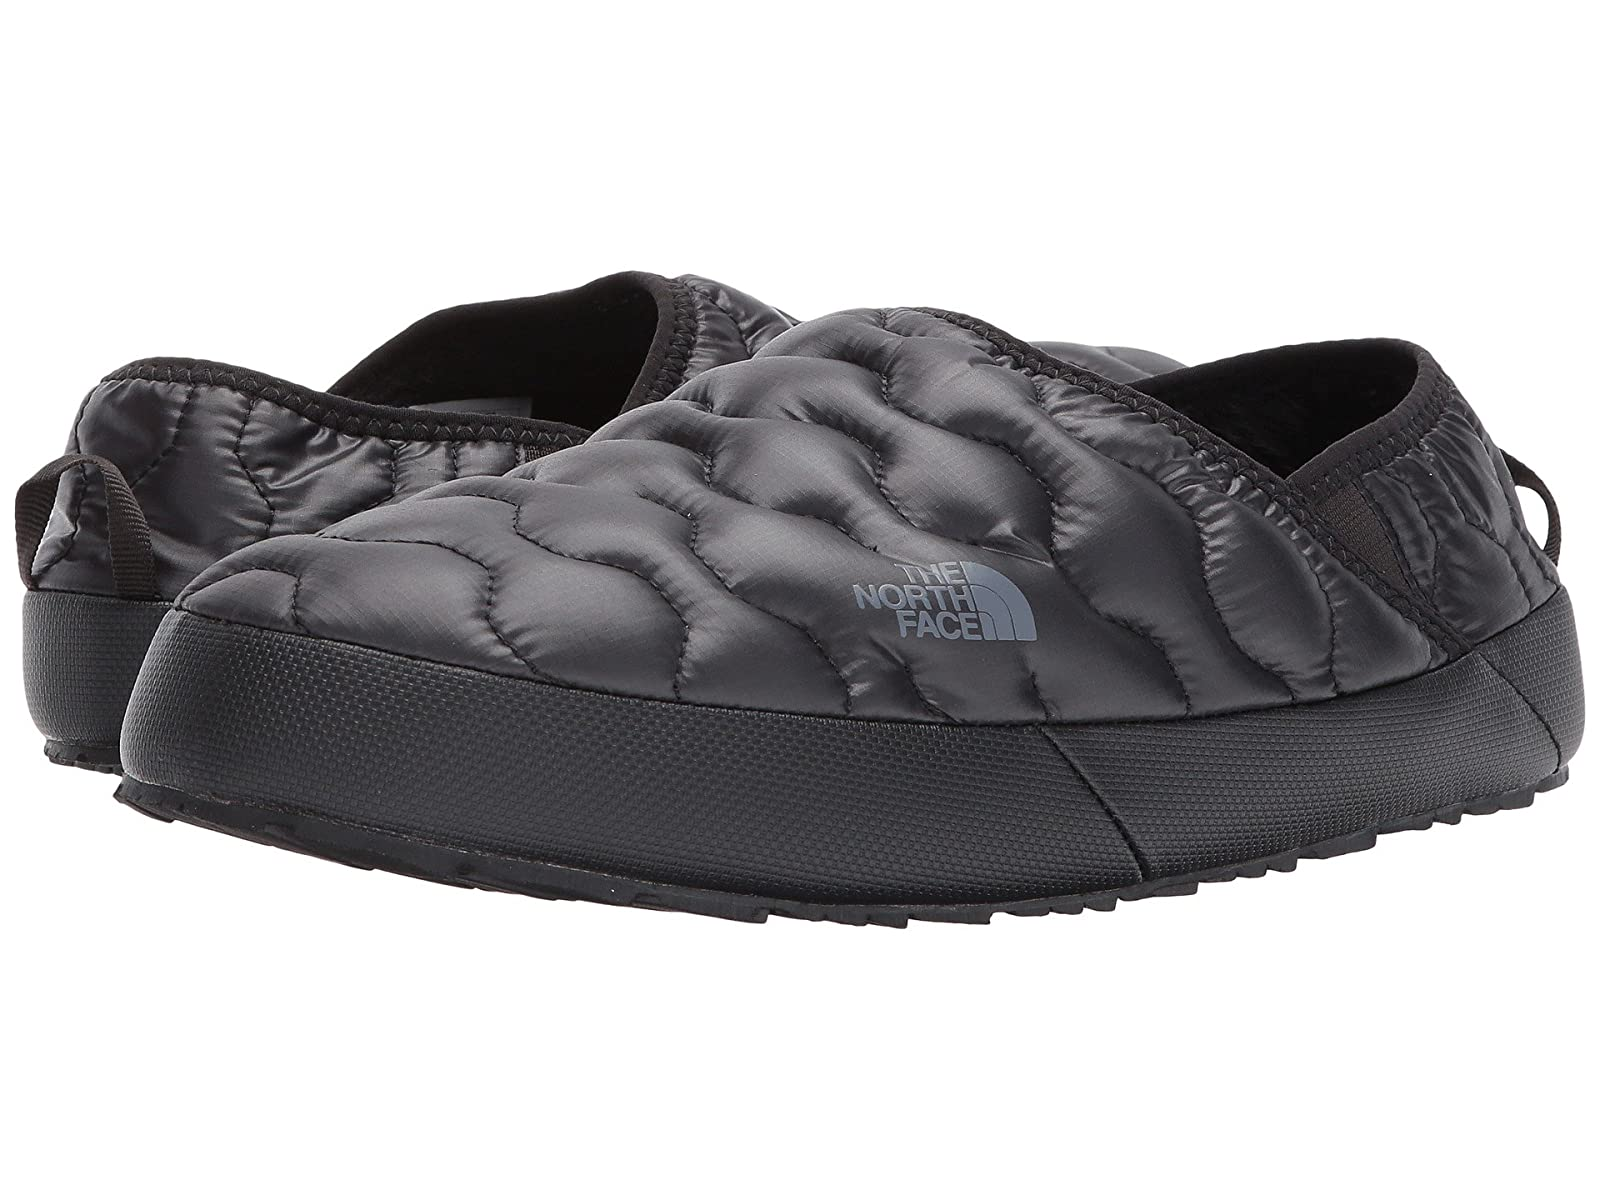 The North Face ThermoBall Traction Mule IVAtmospheric grades have affordable shoes